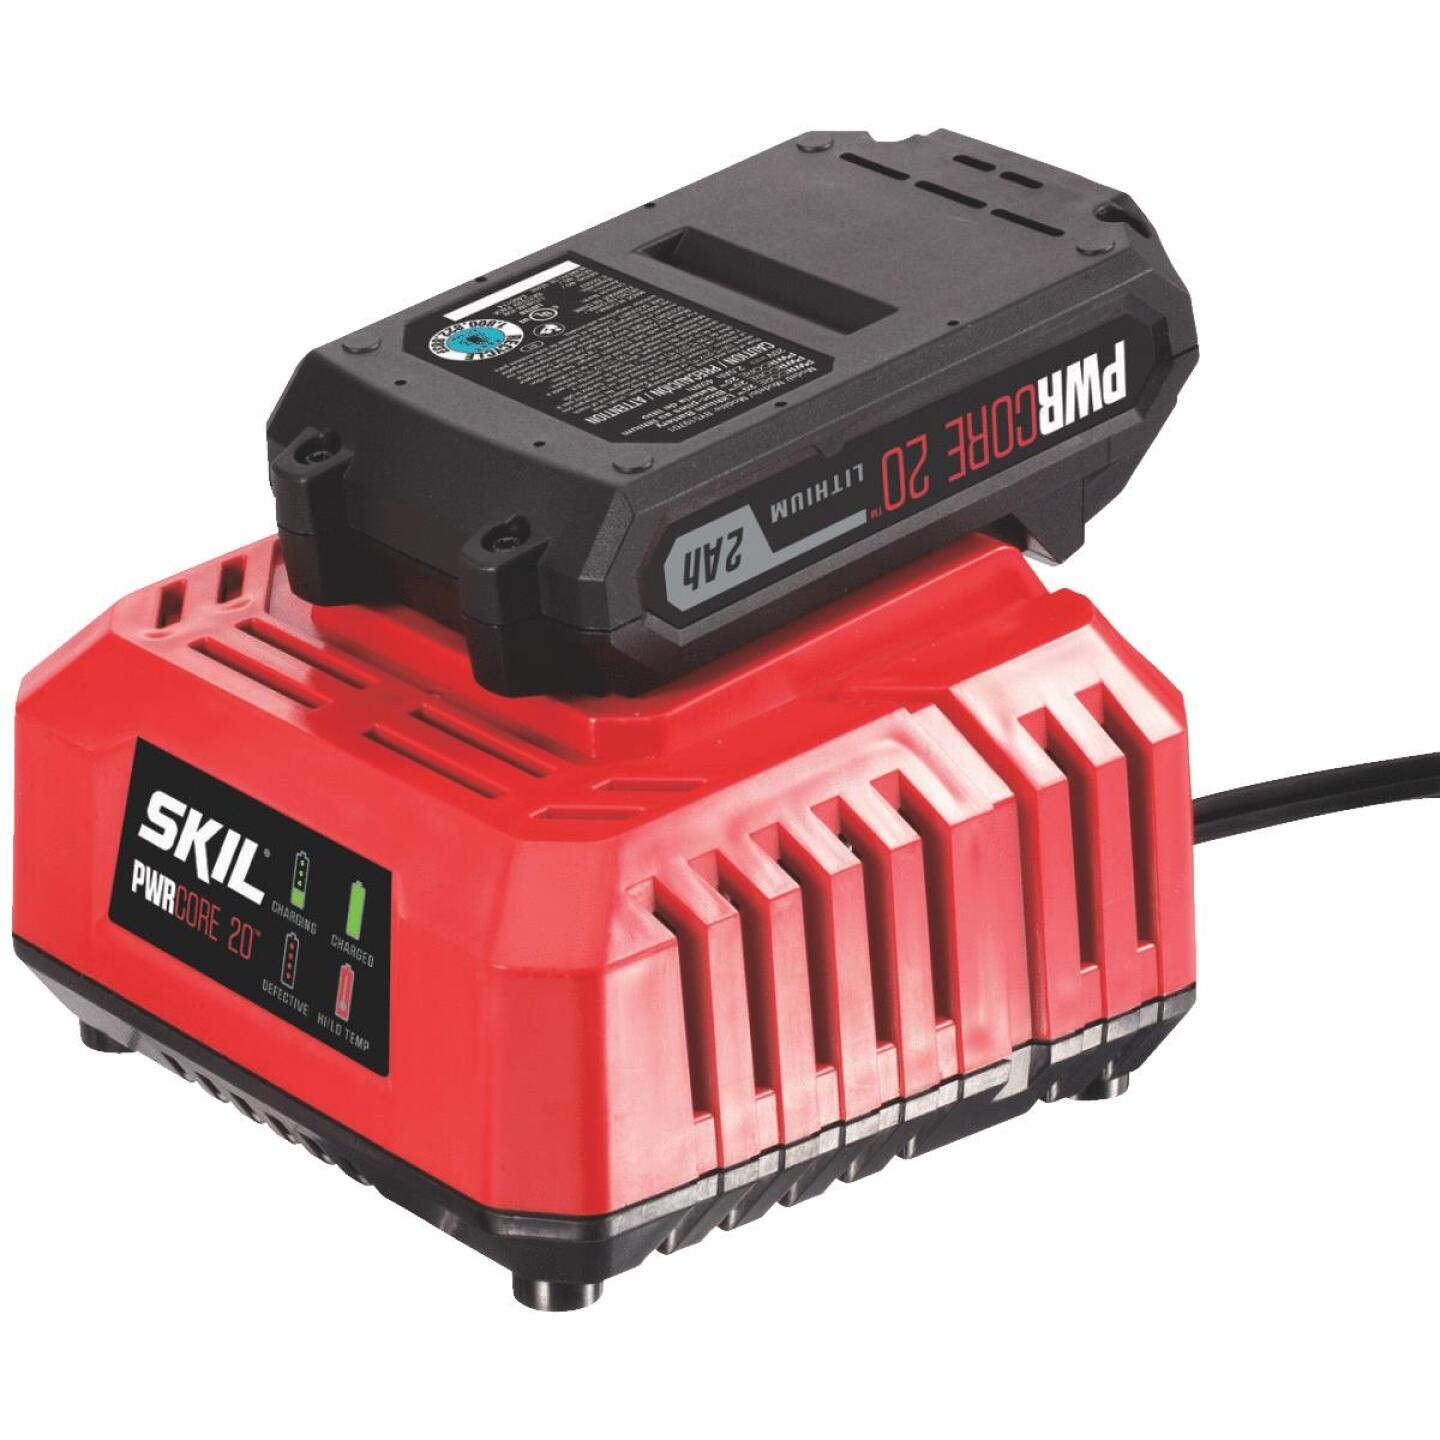 SKIL PWRCore 20 Volt Lithium-Ion Battery Charger Image 1